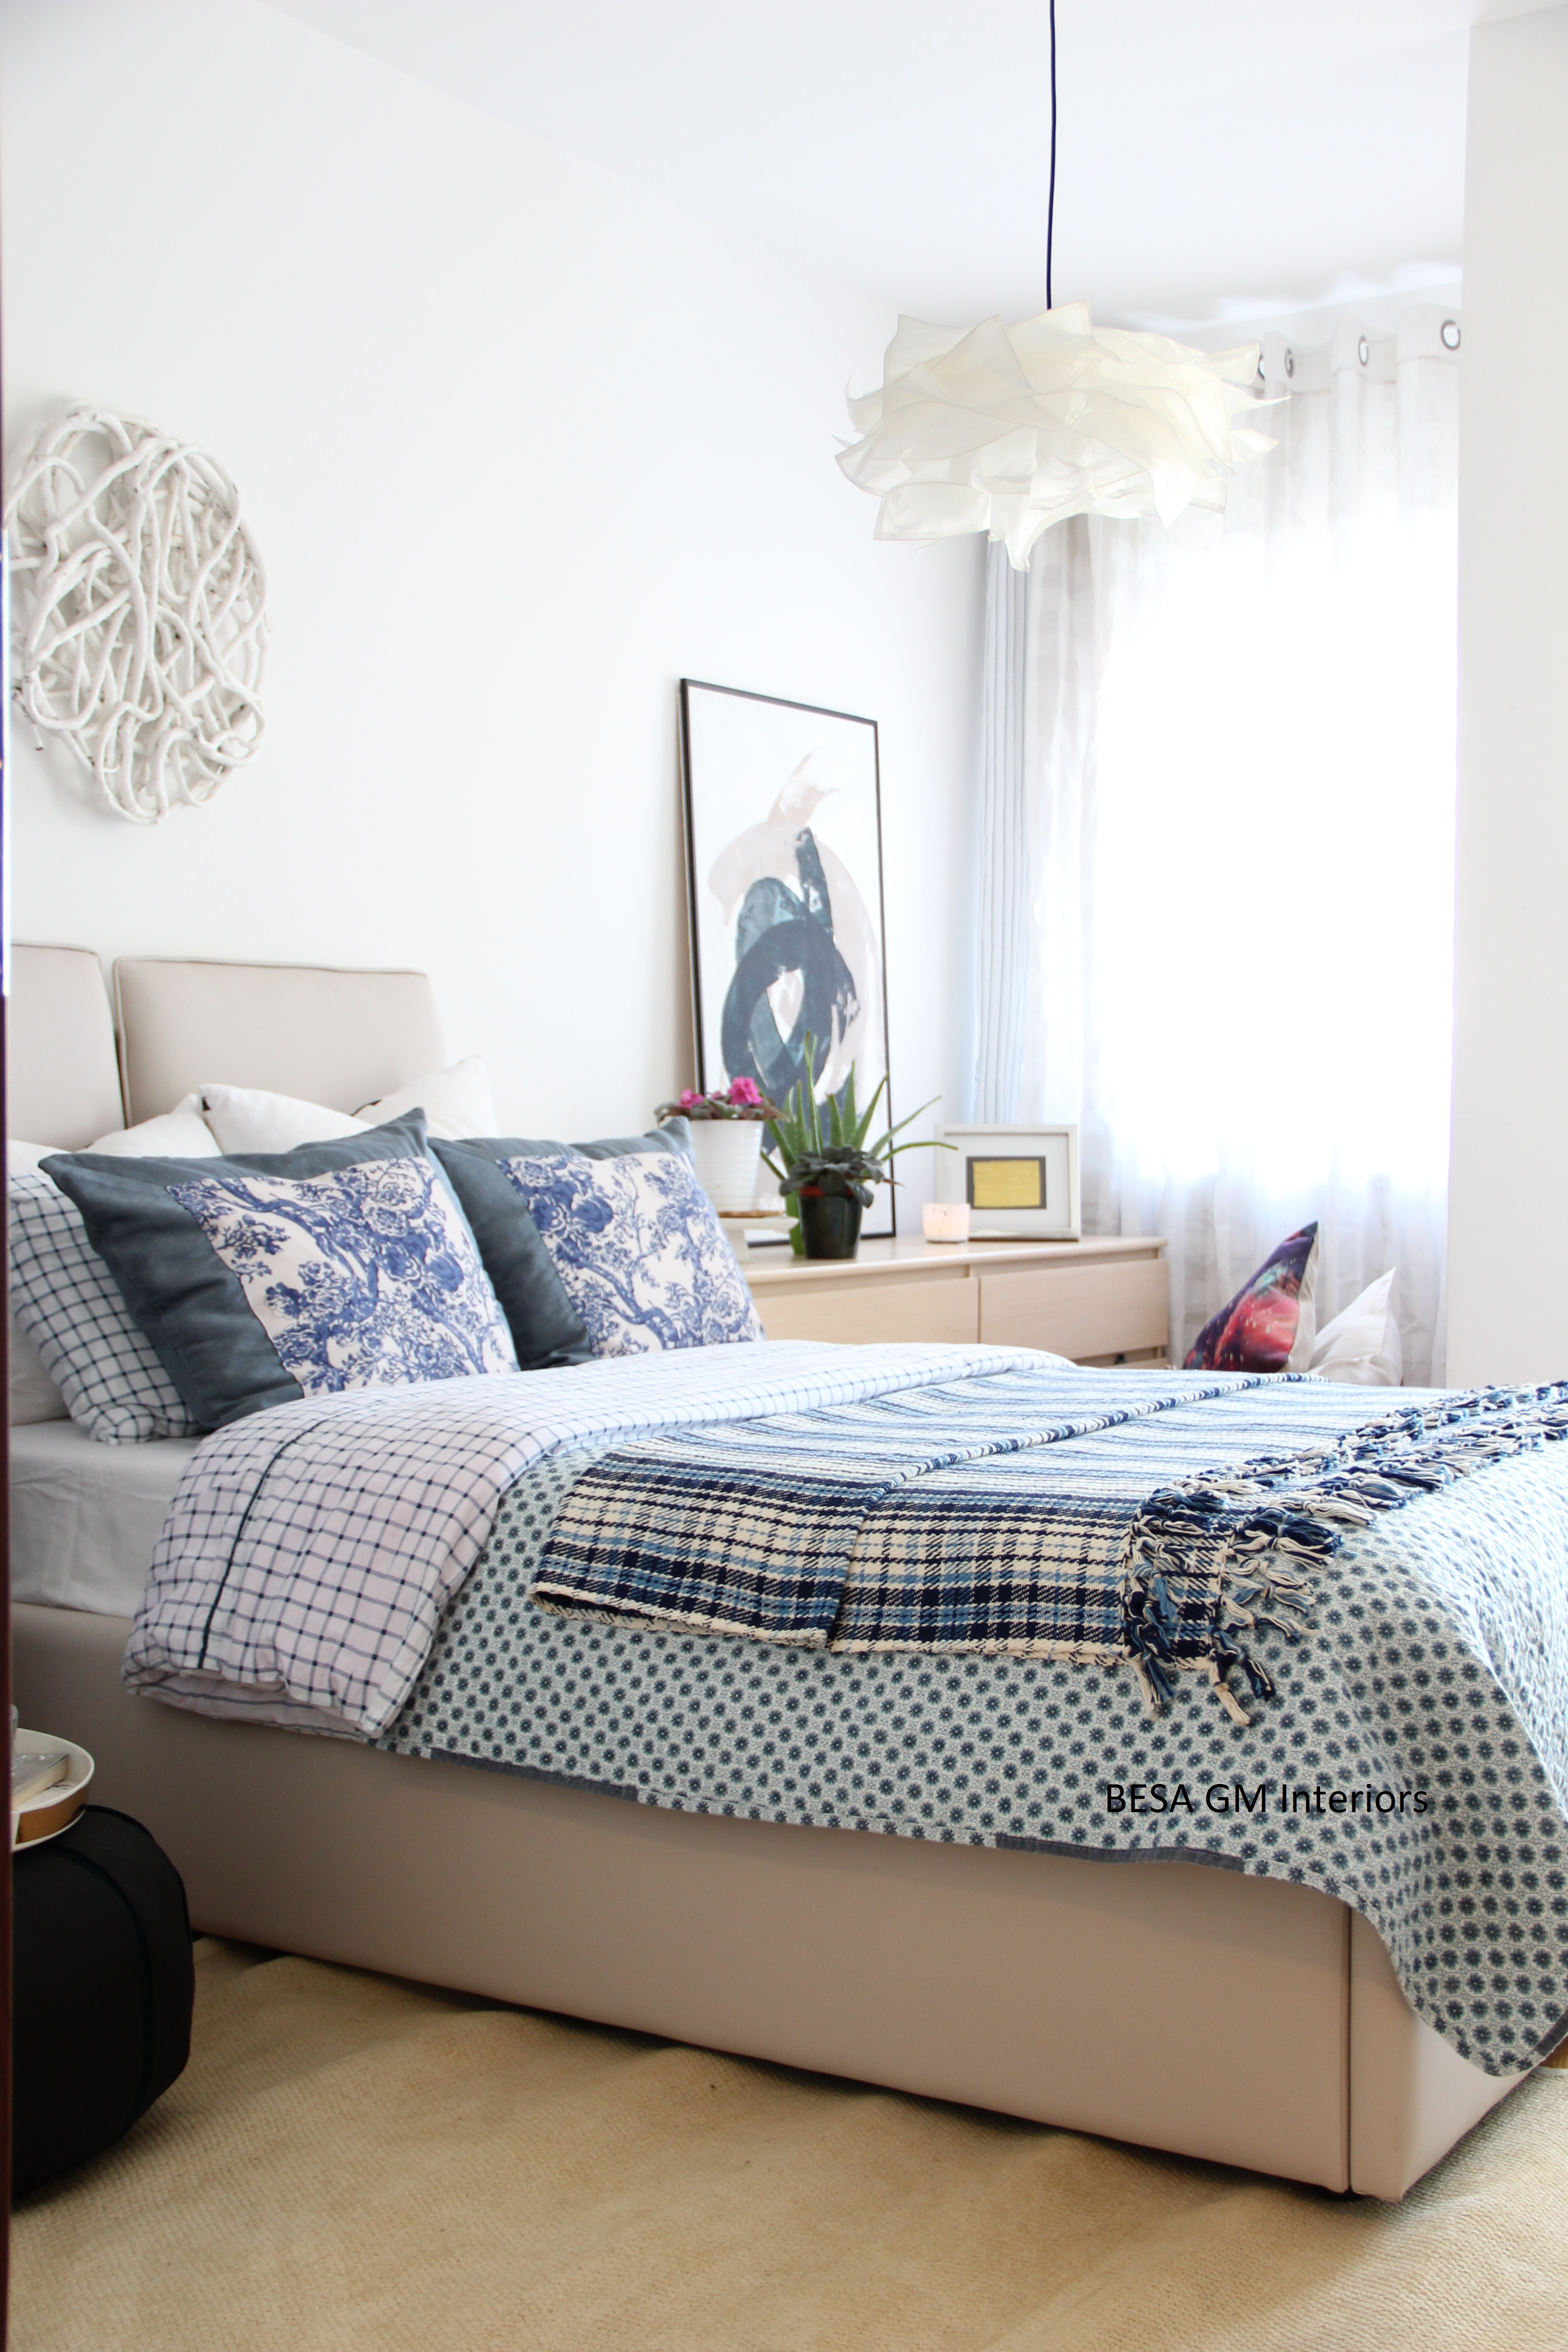 Small Bedroom Styling On A Budget Besa Gm